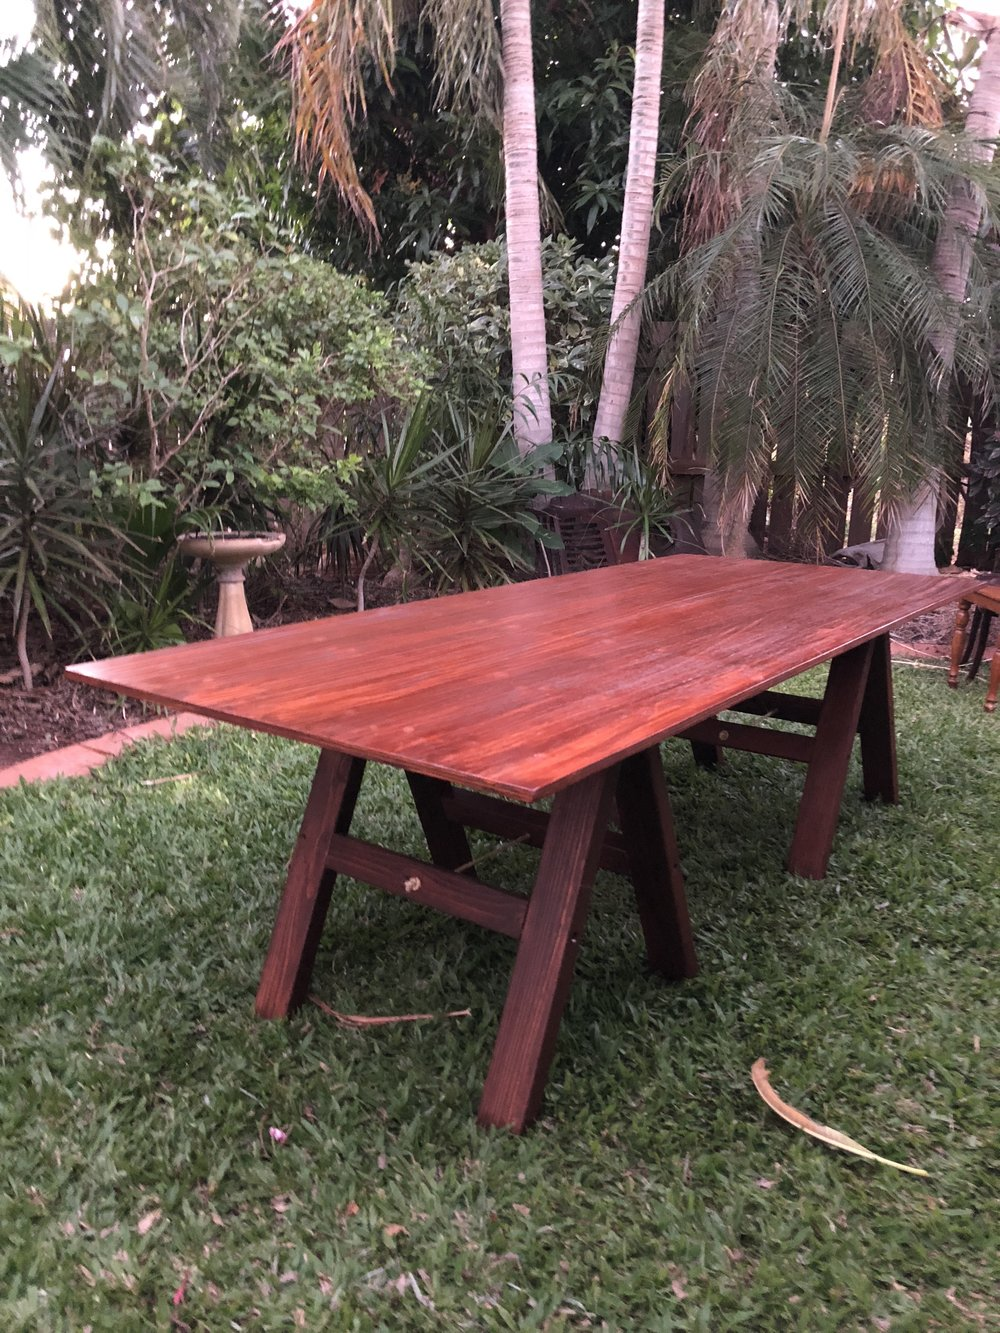 Trestle Tables $70 each or 10 for $550